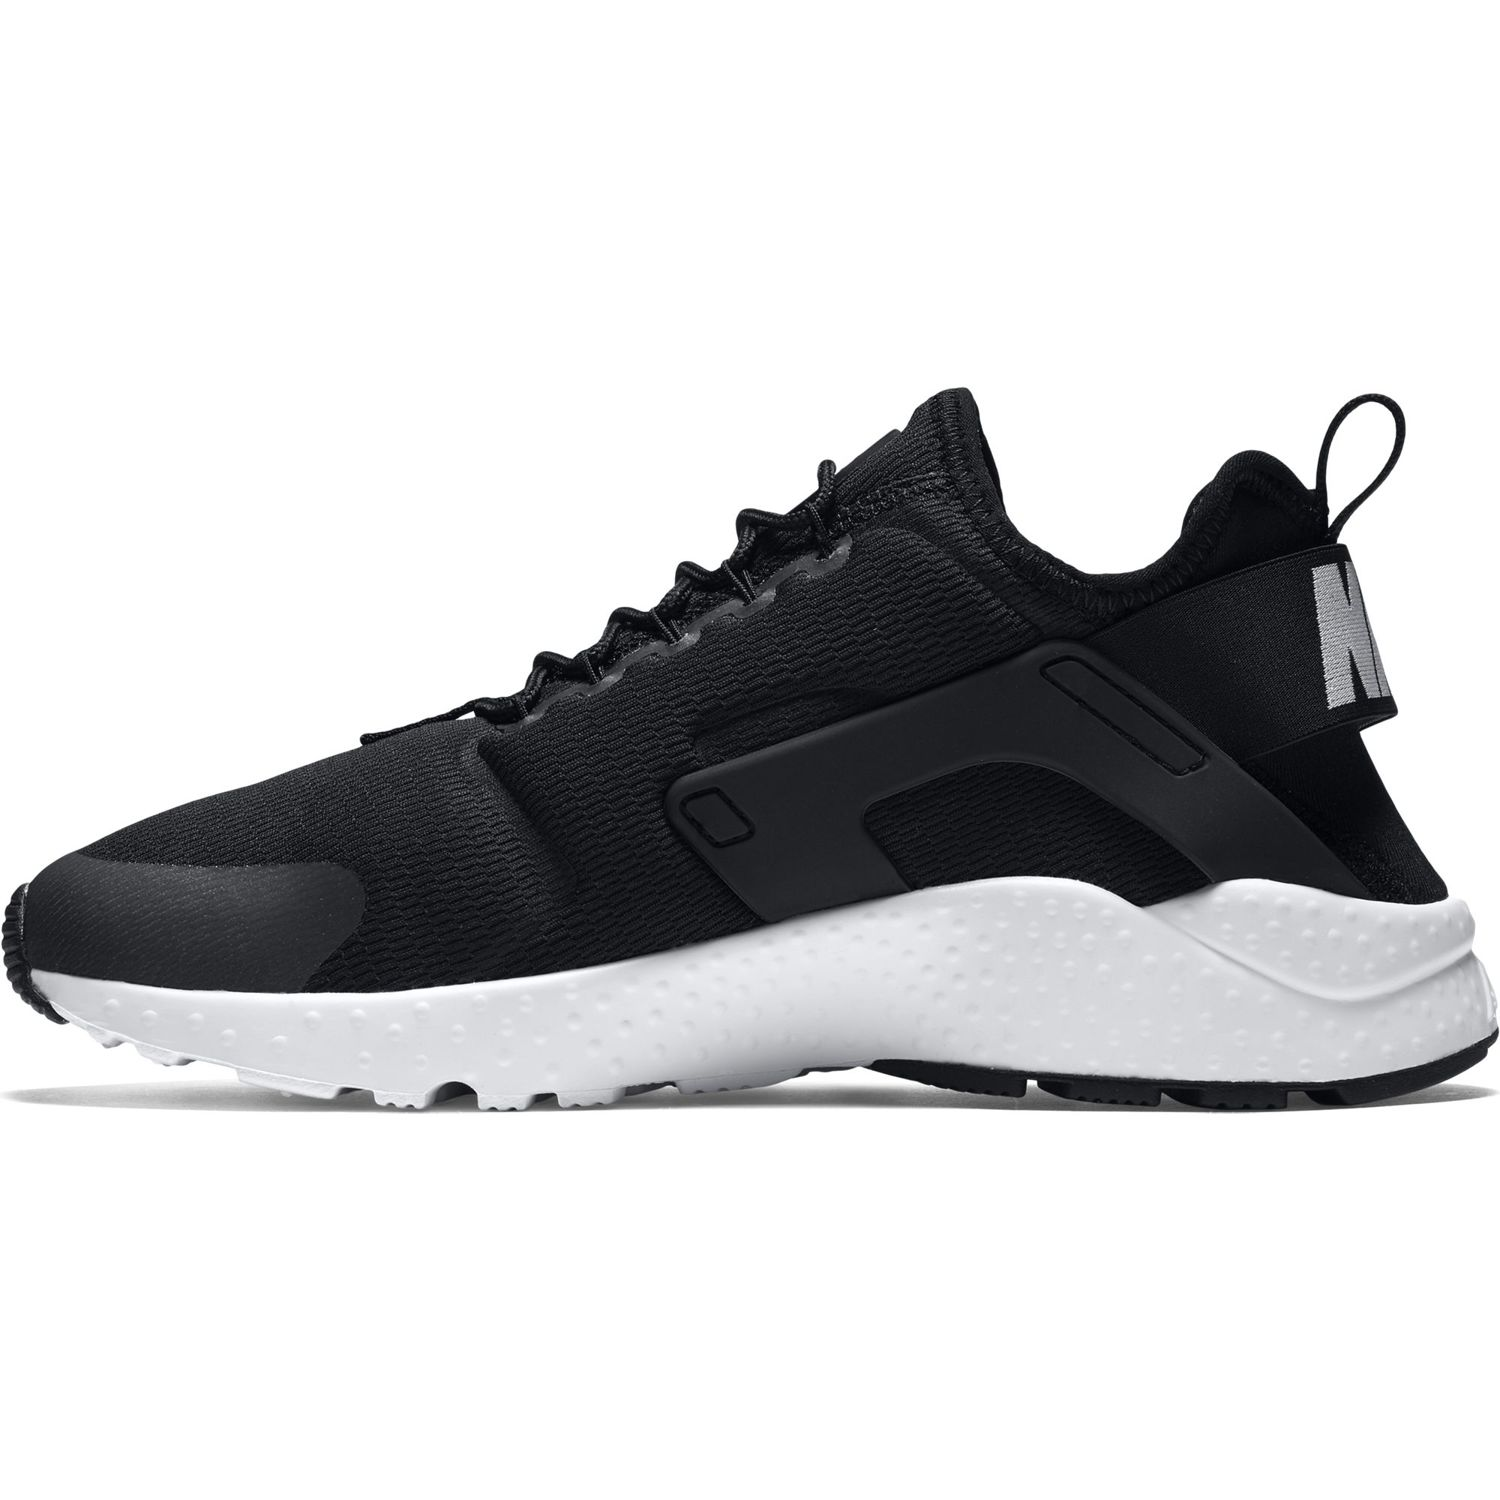 Nike Air Huarache Run Ultra Black/White 819151 001